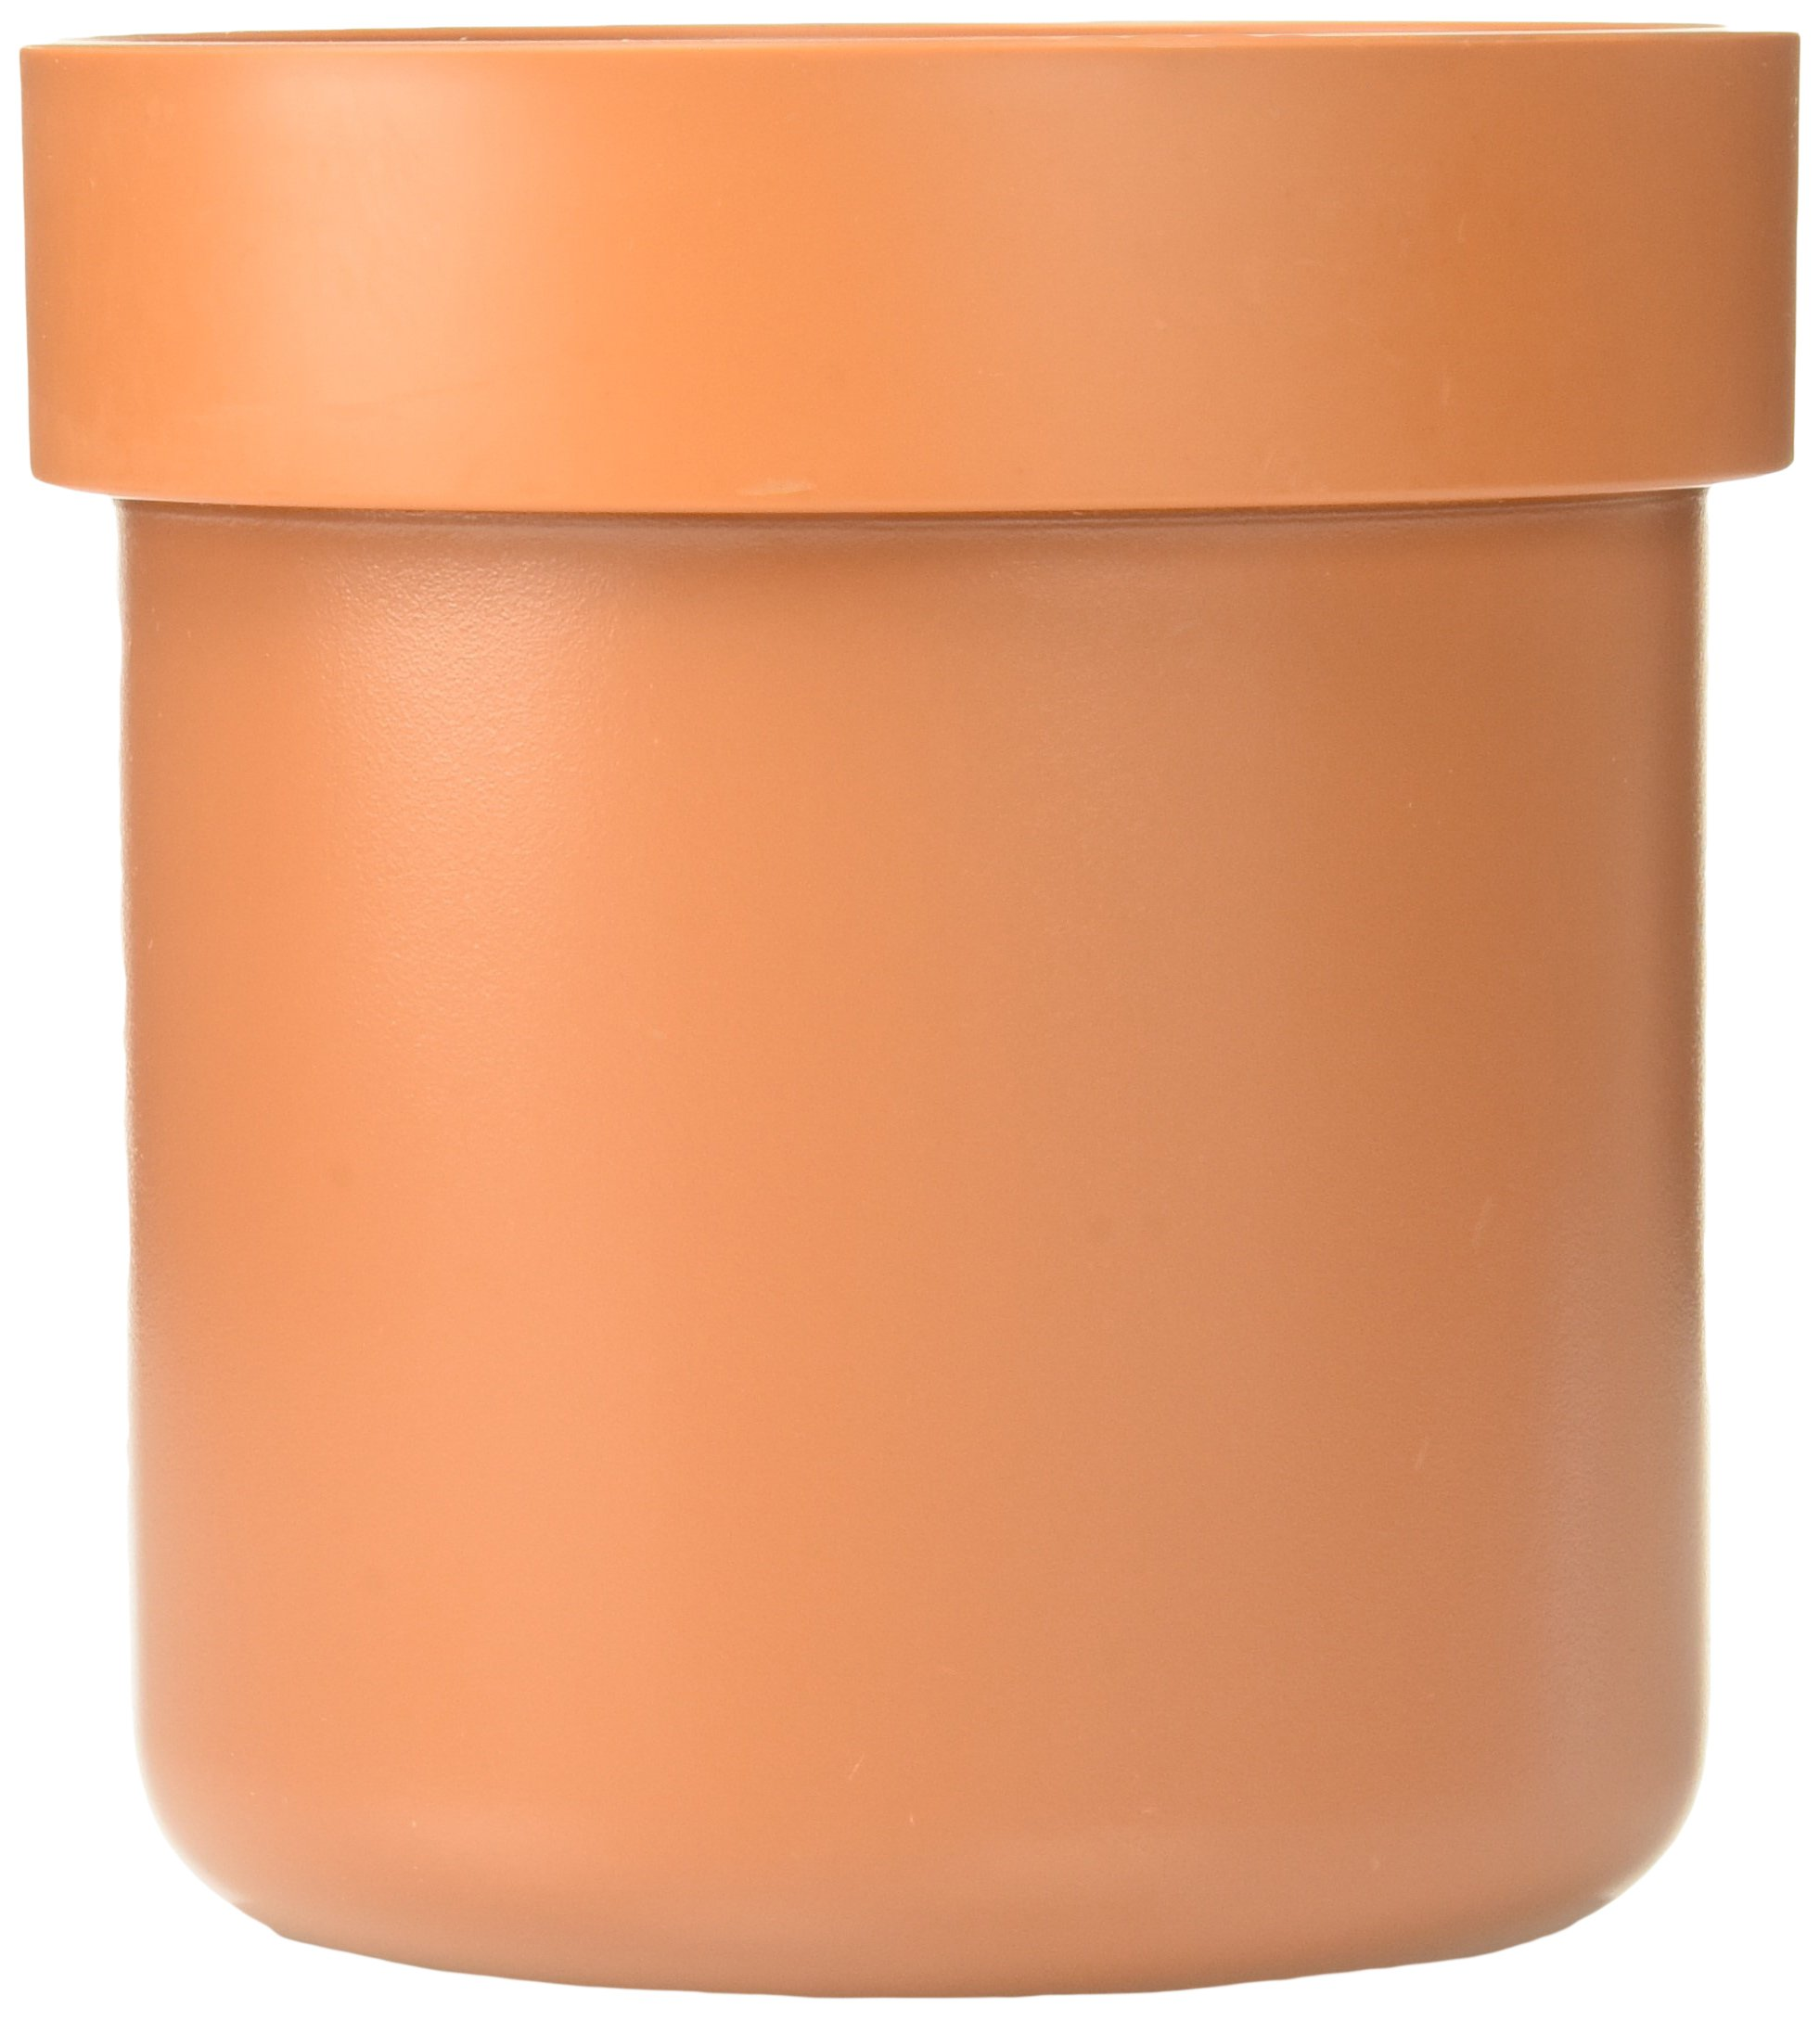 SafeInside 4201 Flower Pot Diversion Safe with Key Lock, Terracotta